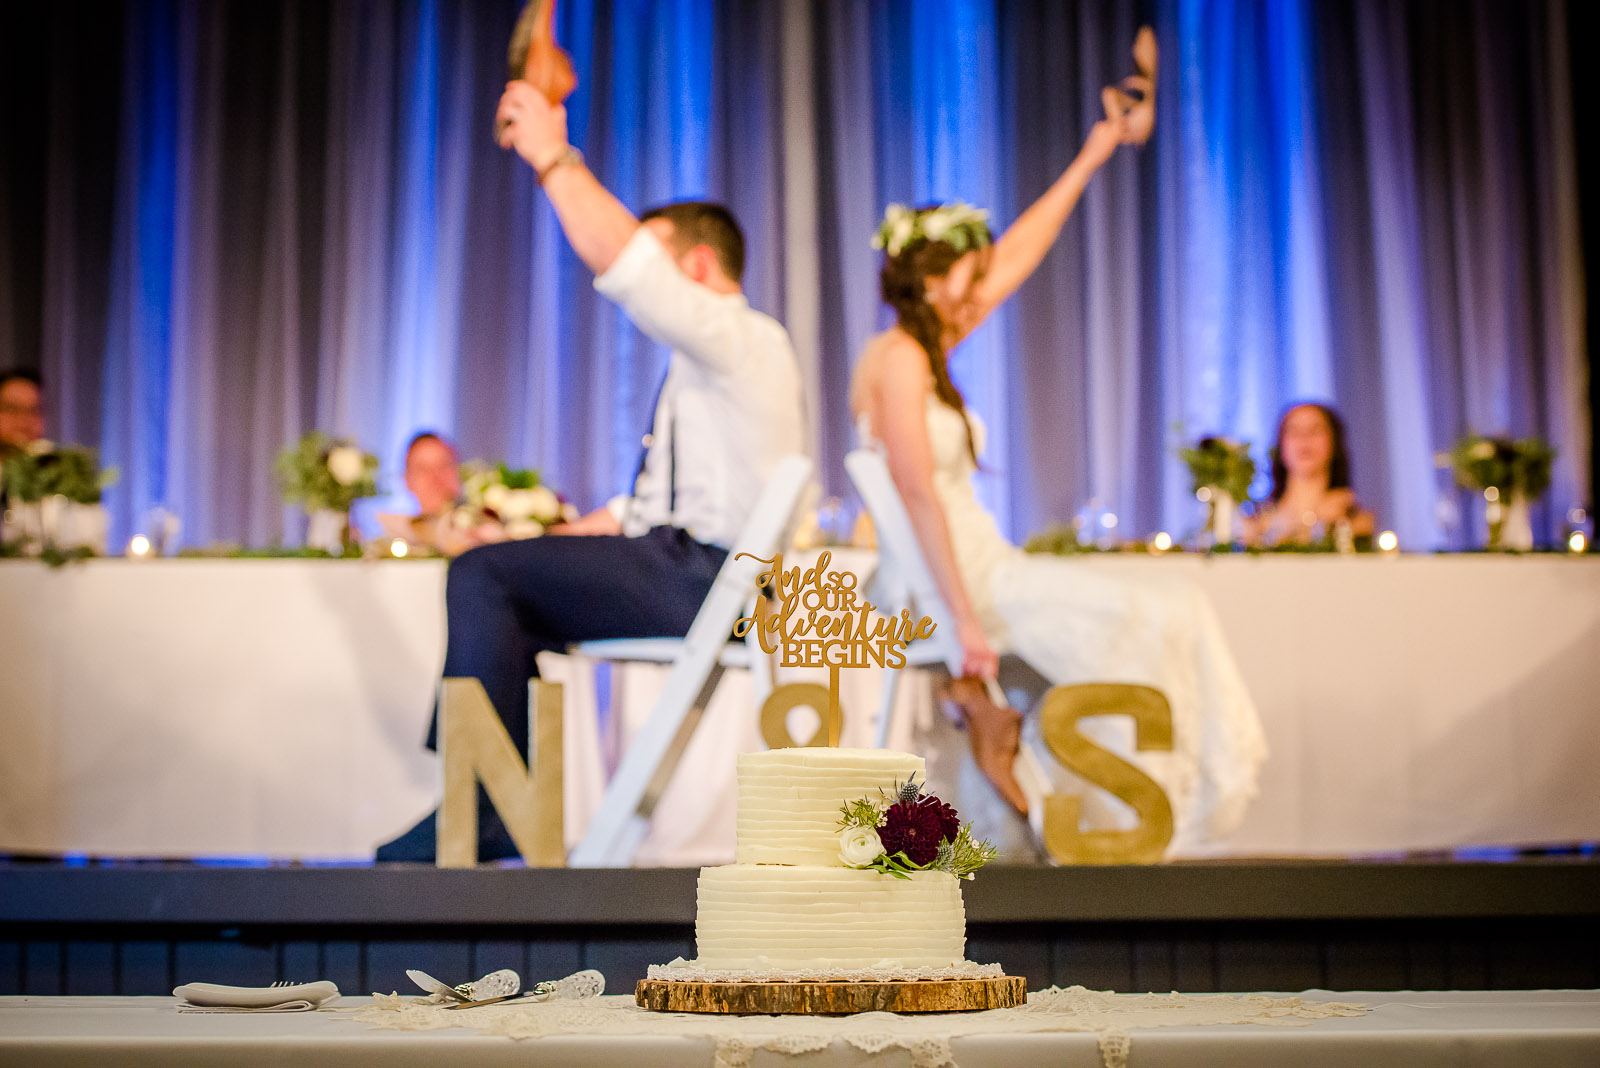 Eric_and_Christy_Photography_Blog_Stephanie_Nick_Wedding-97